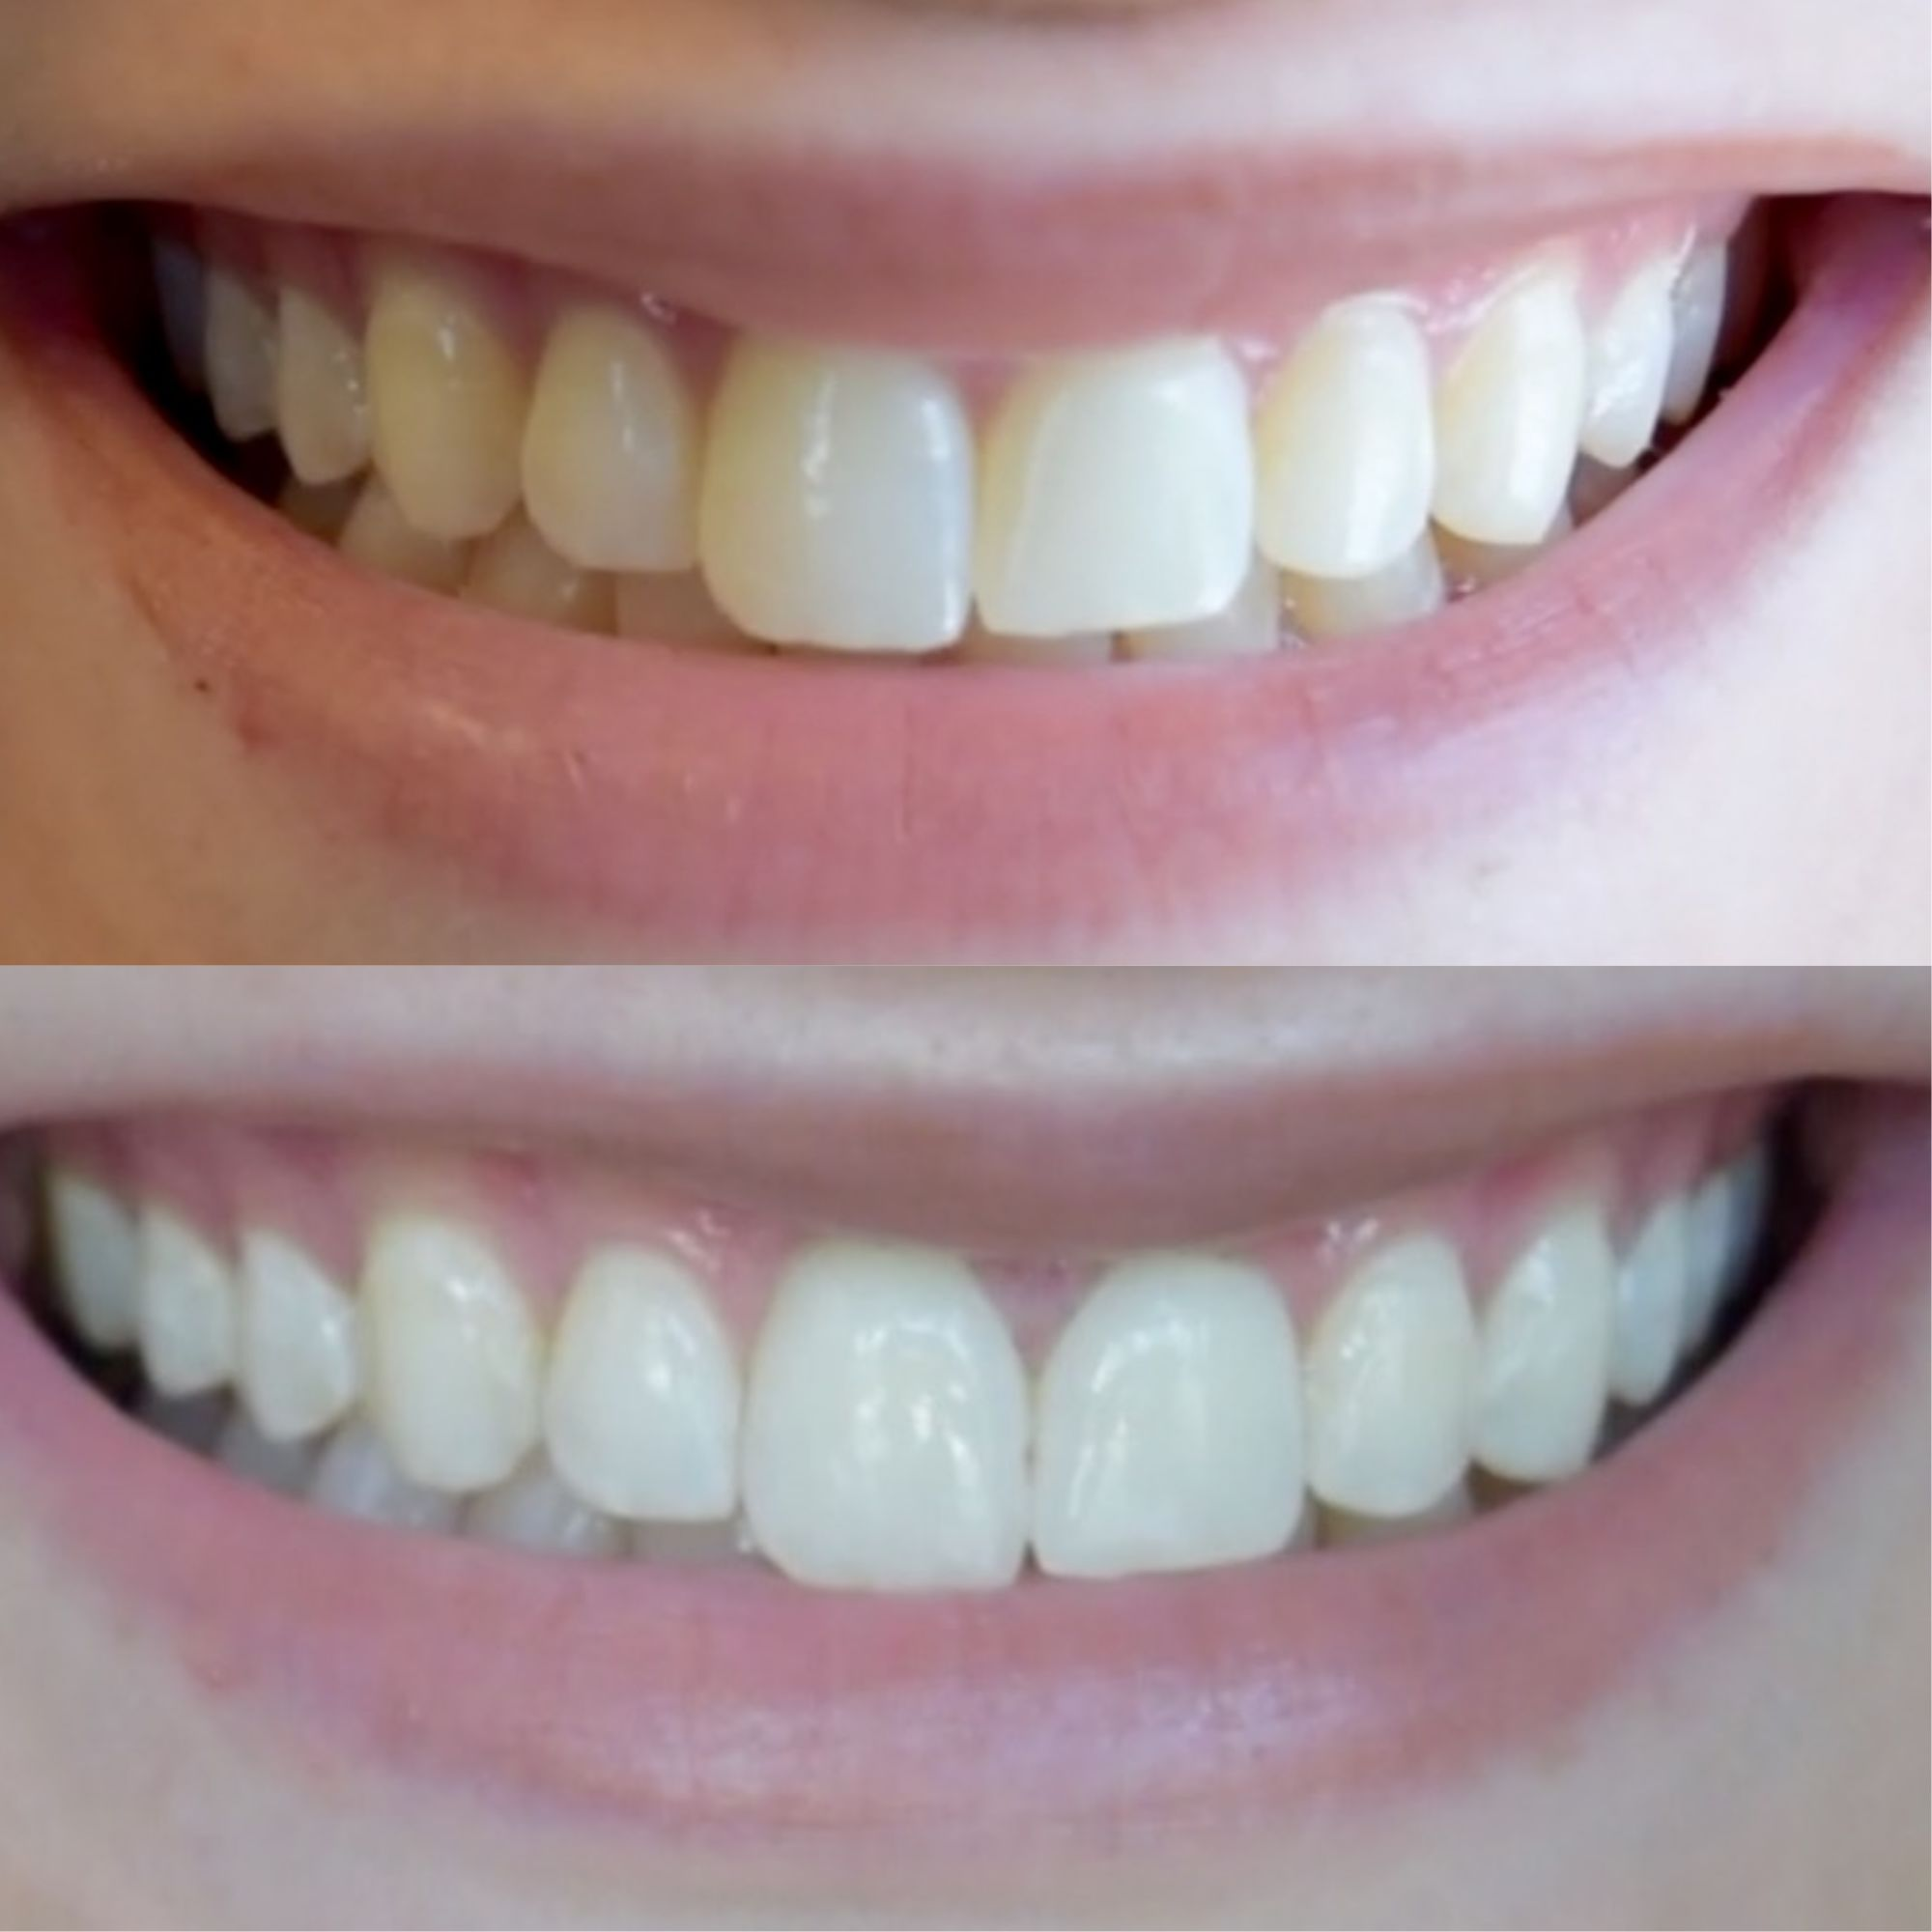 Colgate teeth whitening teeth whitening products pinterest teeth - Carbon Coco Teeth Whitening Activated Charcoal Tooth Polish